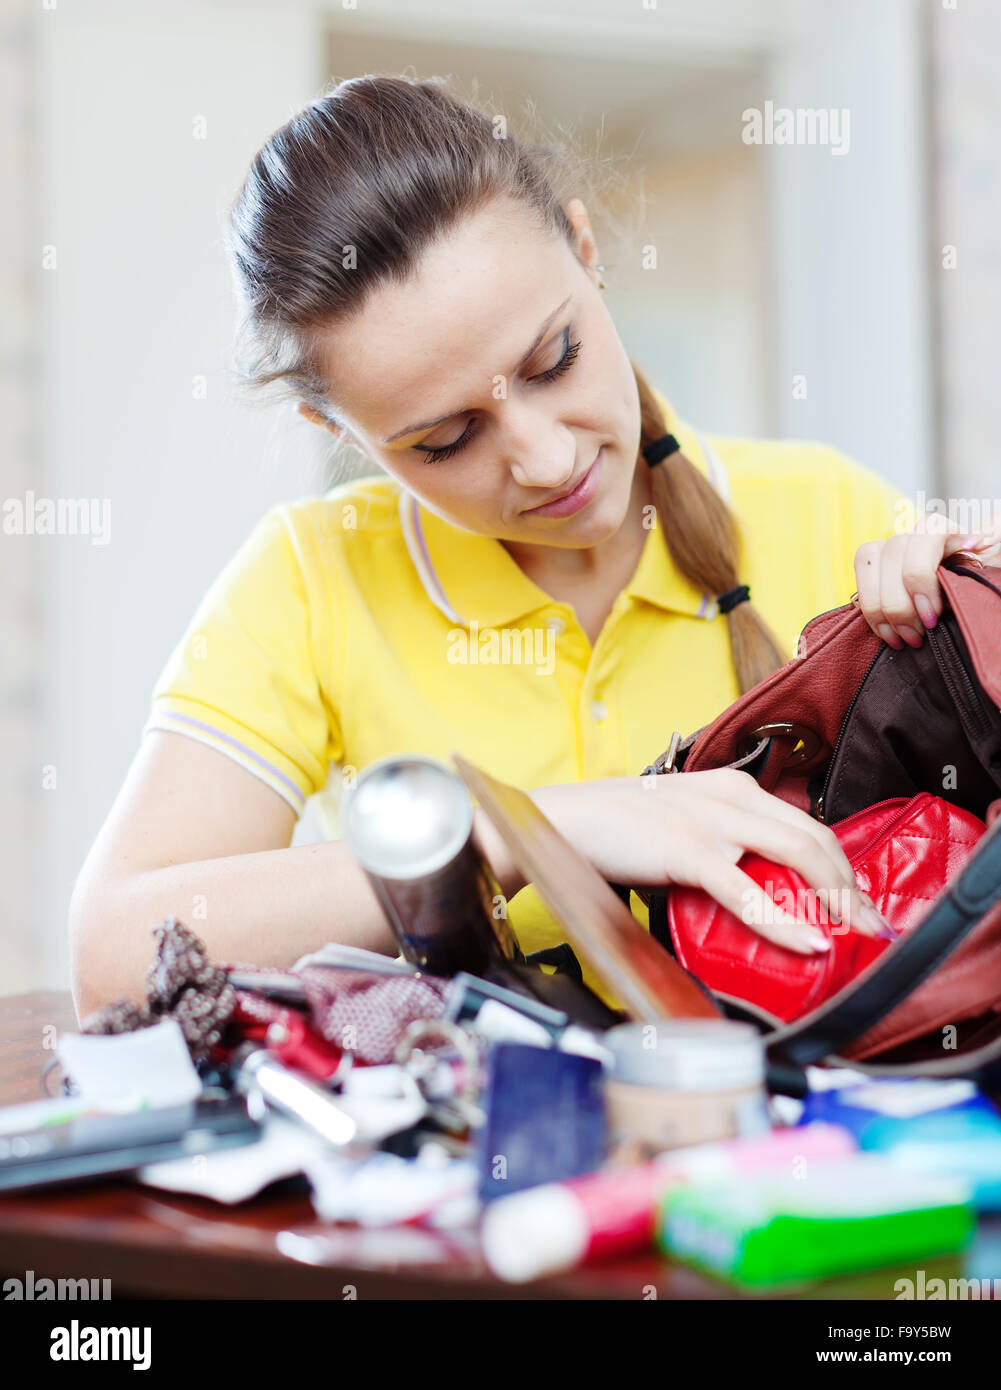 https://c8.alamy.com/comp/F9Y5BW/inconsiderate-woman-searching-something-in-handbag-at-home-F9Y5BW.jpg